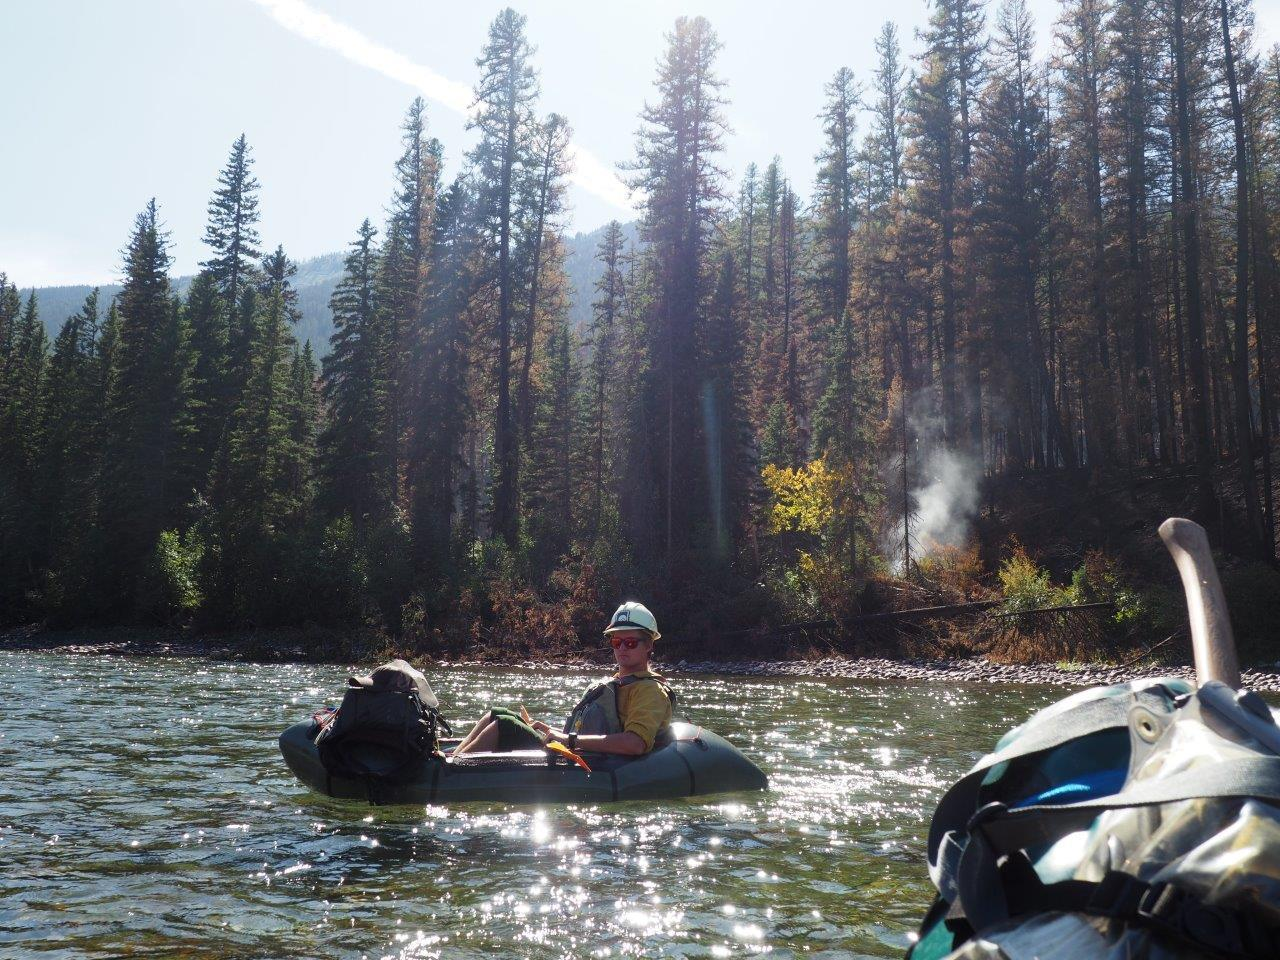 Spotted Bear Ranger District's wildland fire certified river rangers floated down the South Fork of the Flathead River on 8/19/19. The crew assessed damage from the Snow Creek Fire prior to the altering of the area closure. Photo by Fischer Gangemi.